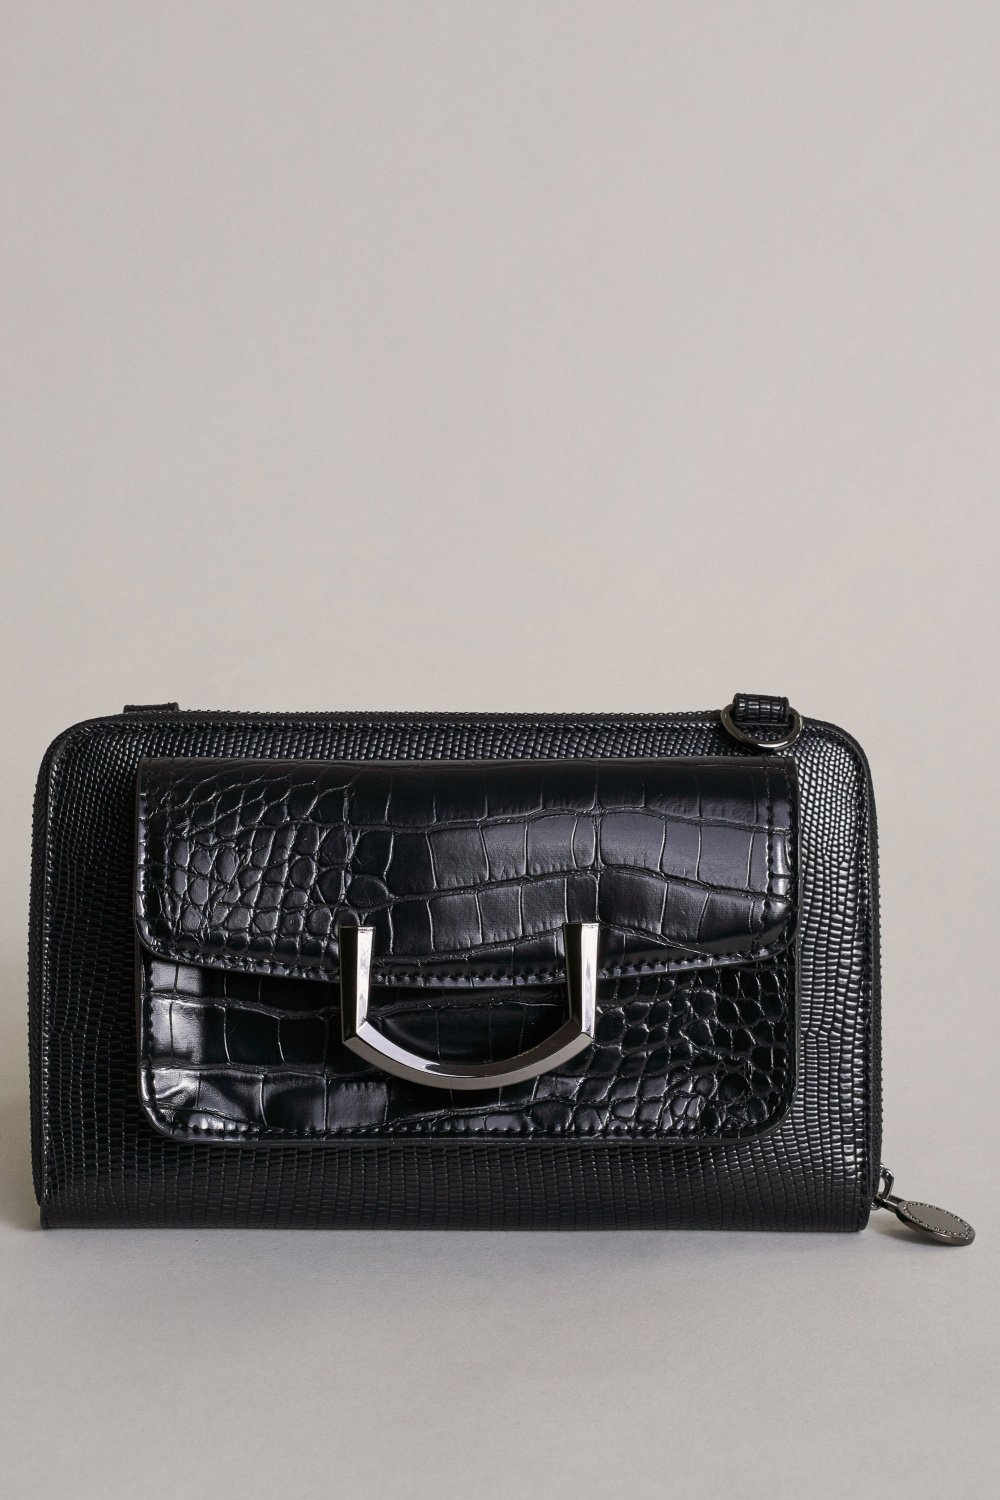 ´INVICTA´ Small handbag with croc effect - Salsa